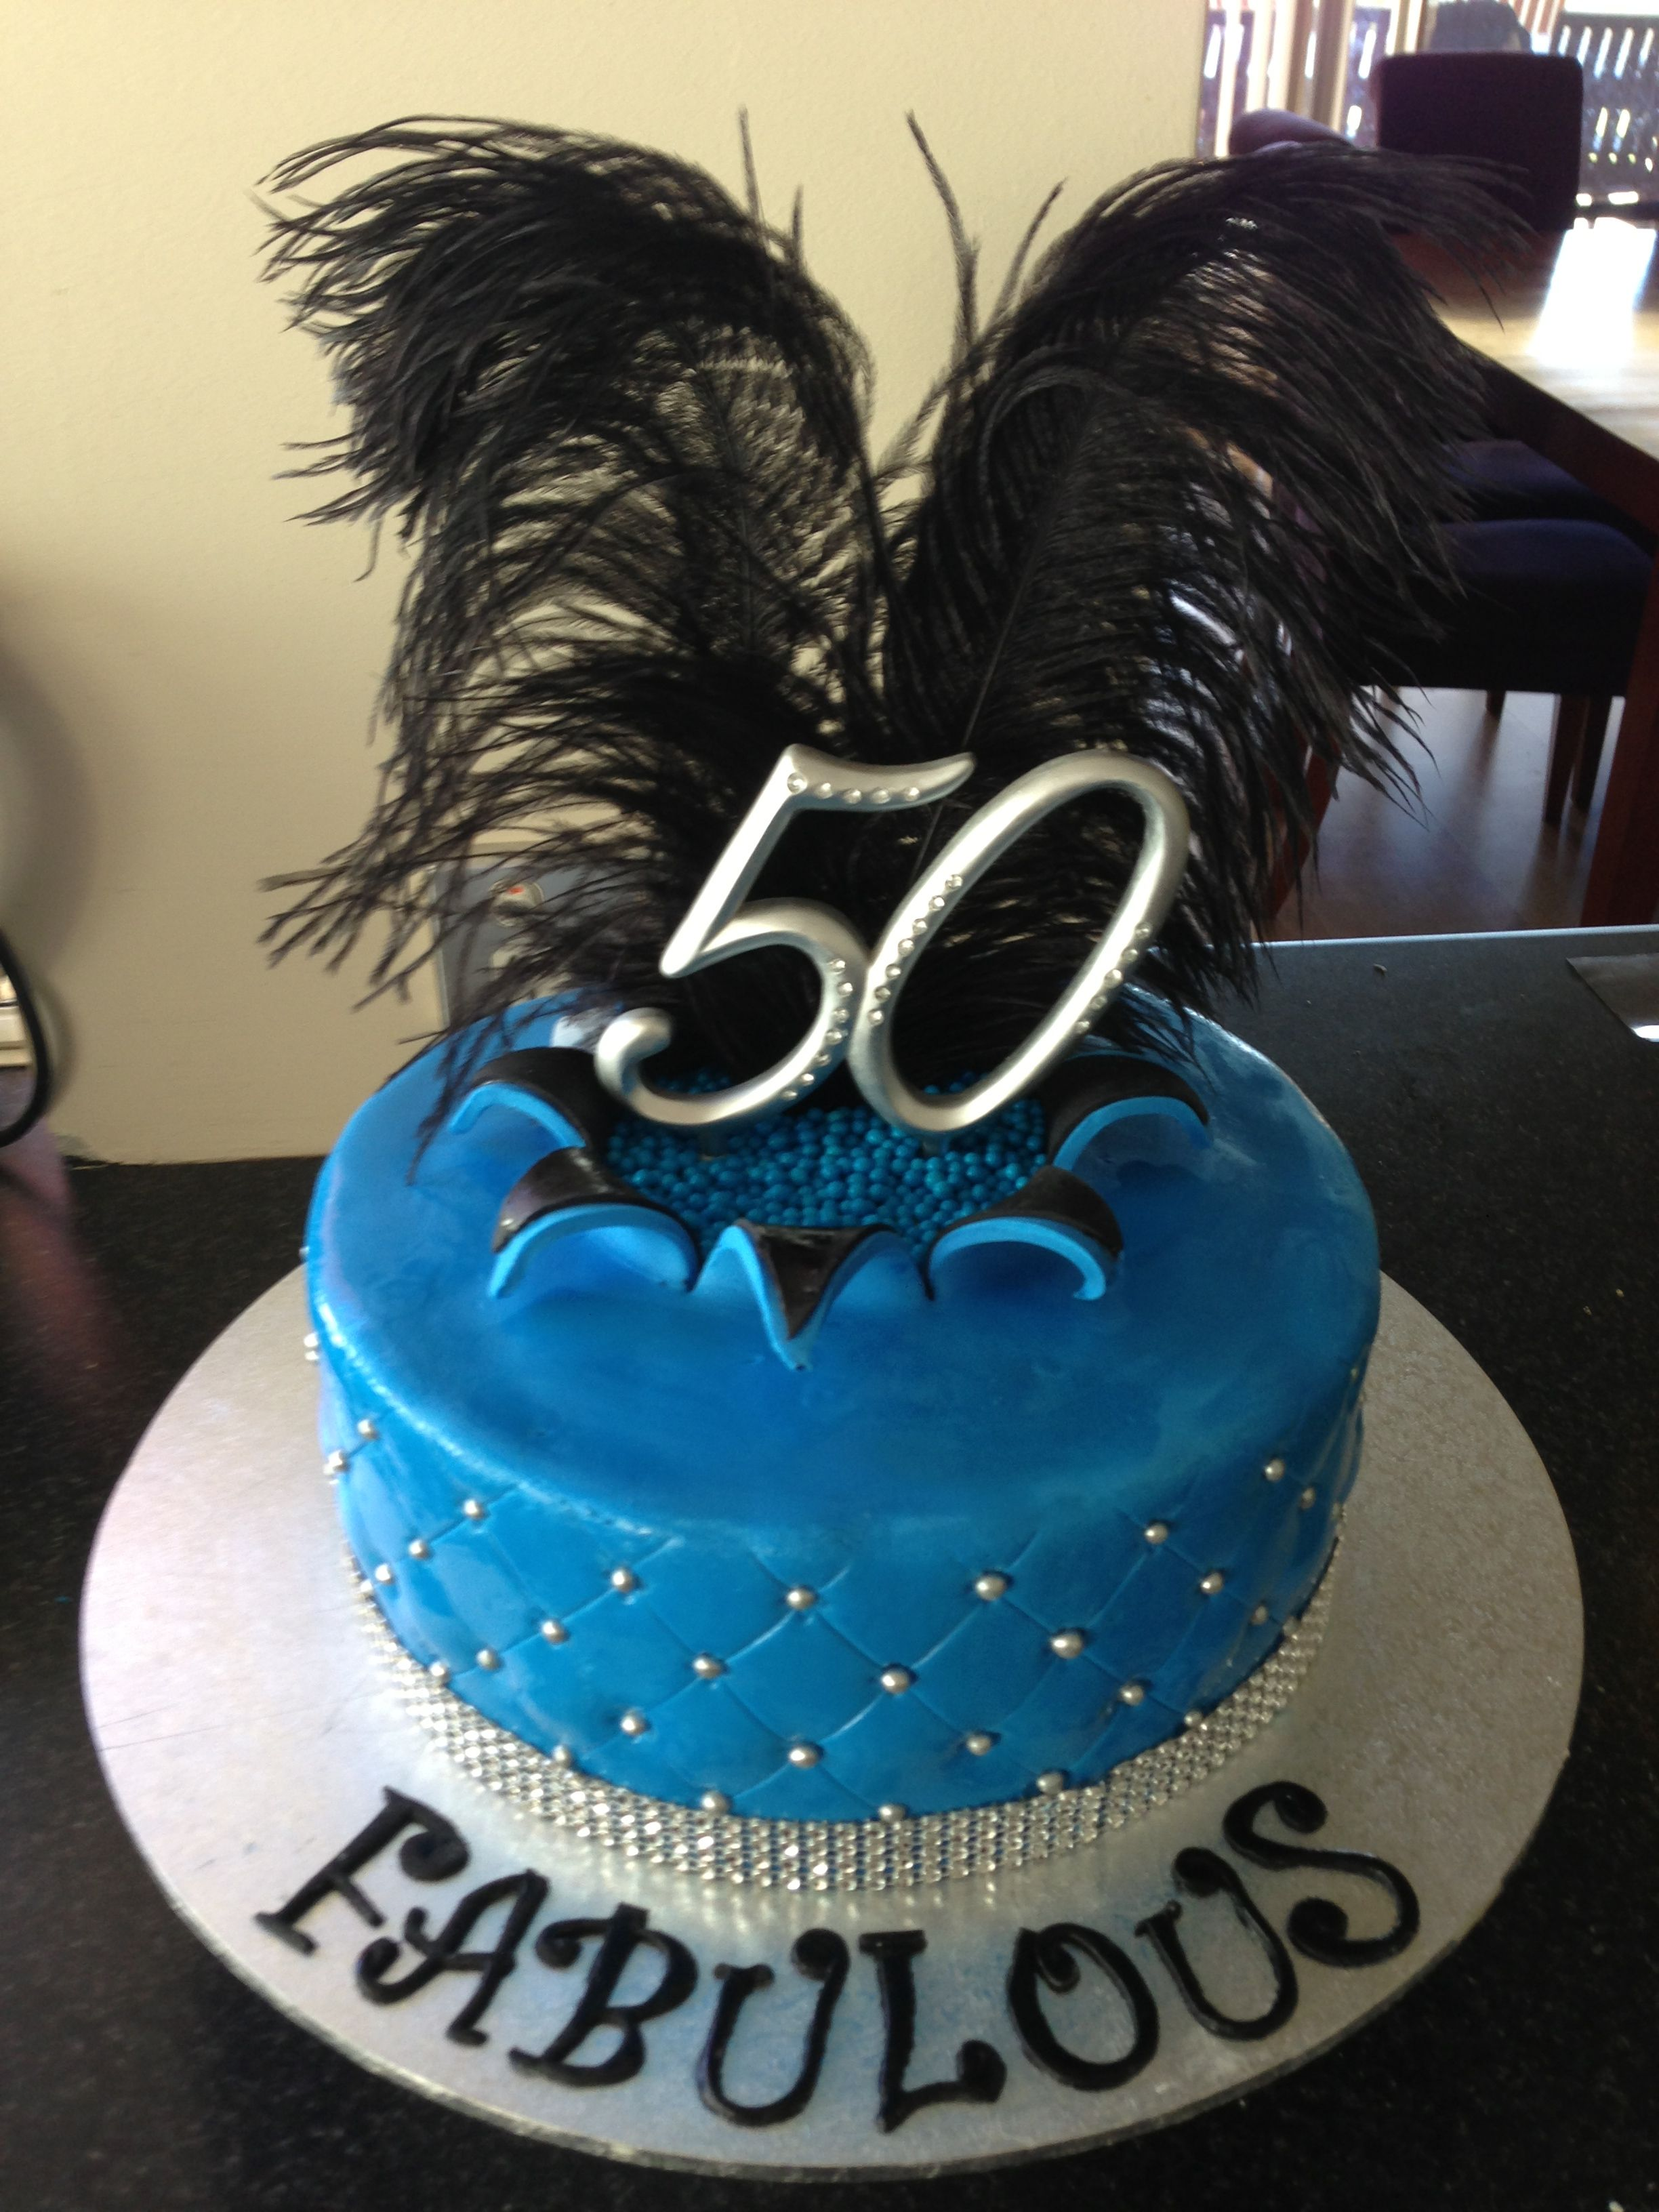 50 And Fabulous Birthday Cake 50th B Day Party Pinterest